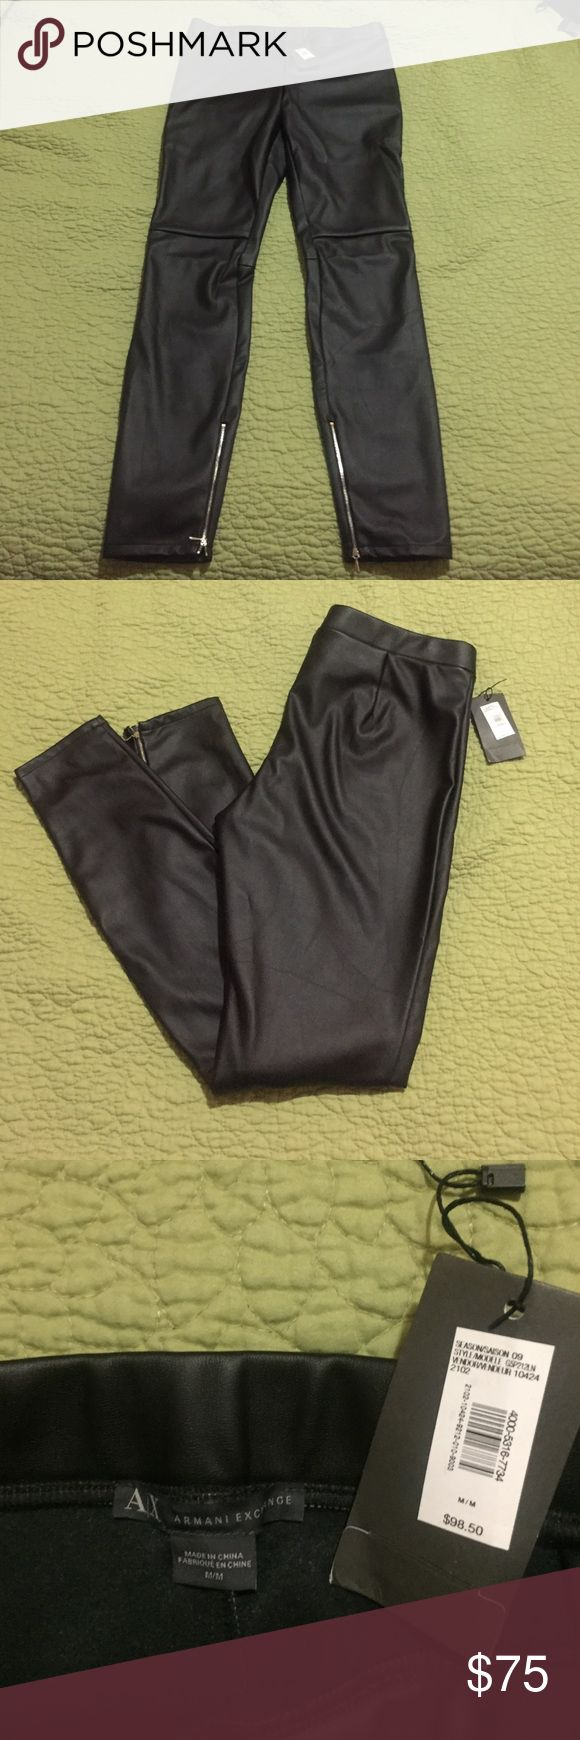 [ ARMANI EXCHANGE ] Black Leather Leggings Black leather material leggings, some stretch, not a lot. Two inner zippers on the bottom of the legs. Comes w. Authenticity card in price tag. Never worn. Make an offer A/X Armani Exchange Pants Leggings